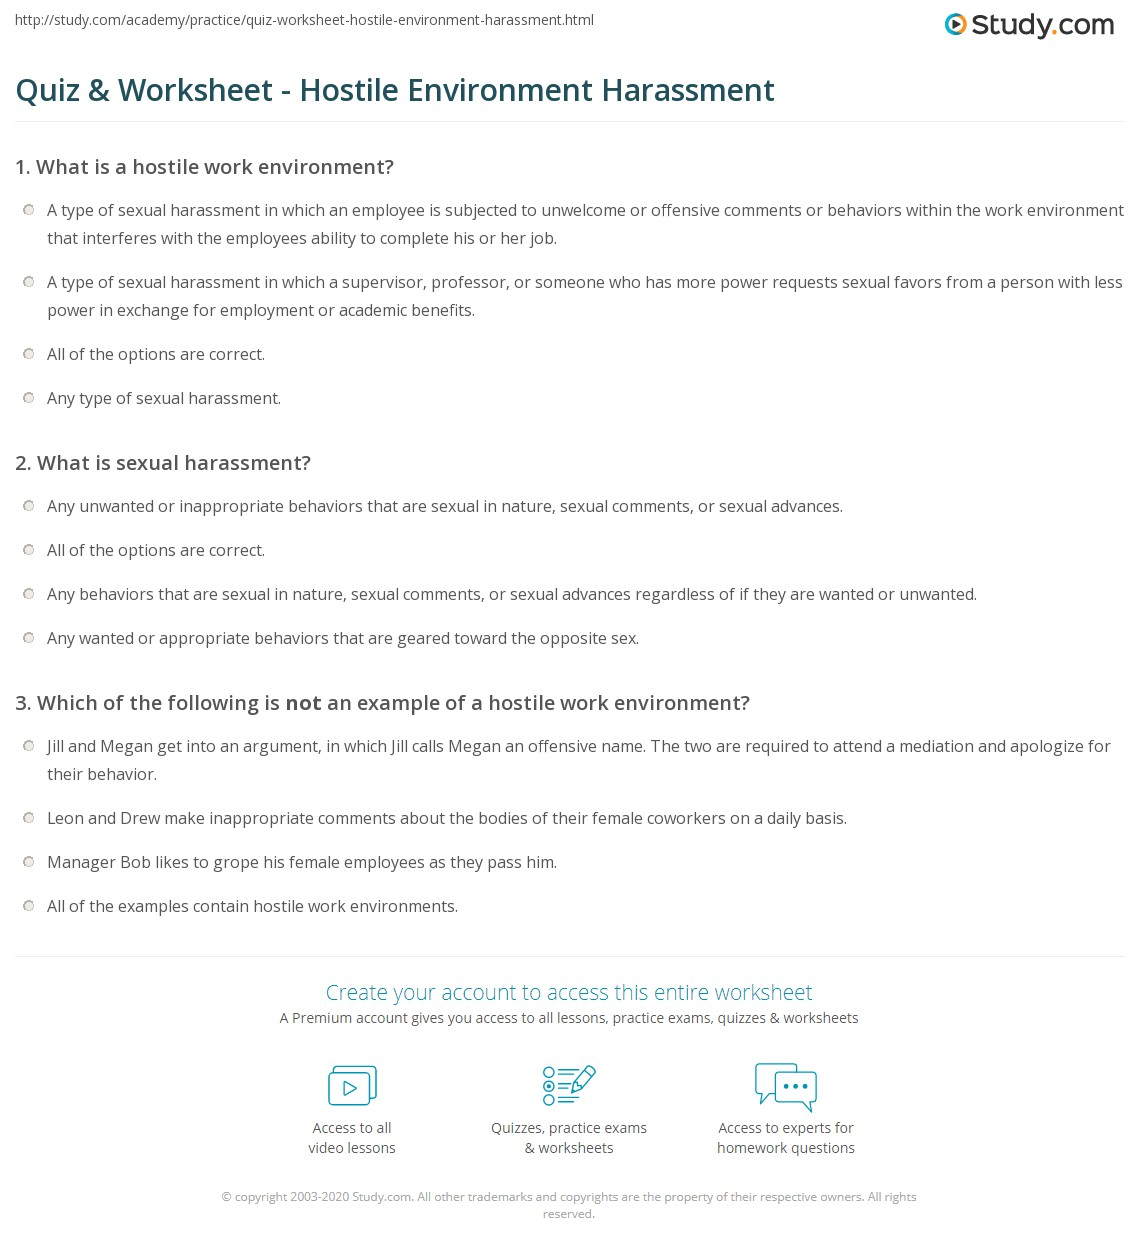 quiz & worksheet - hostile environment harassment | study